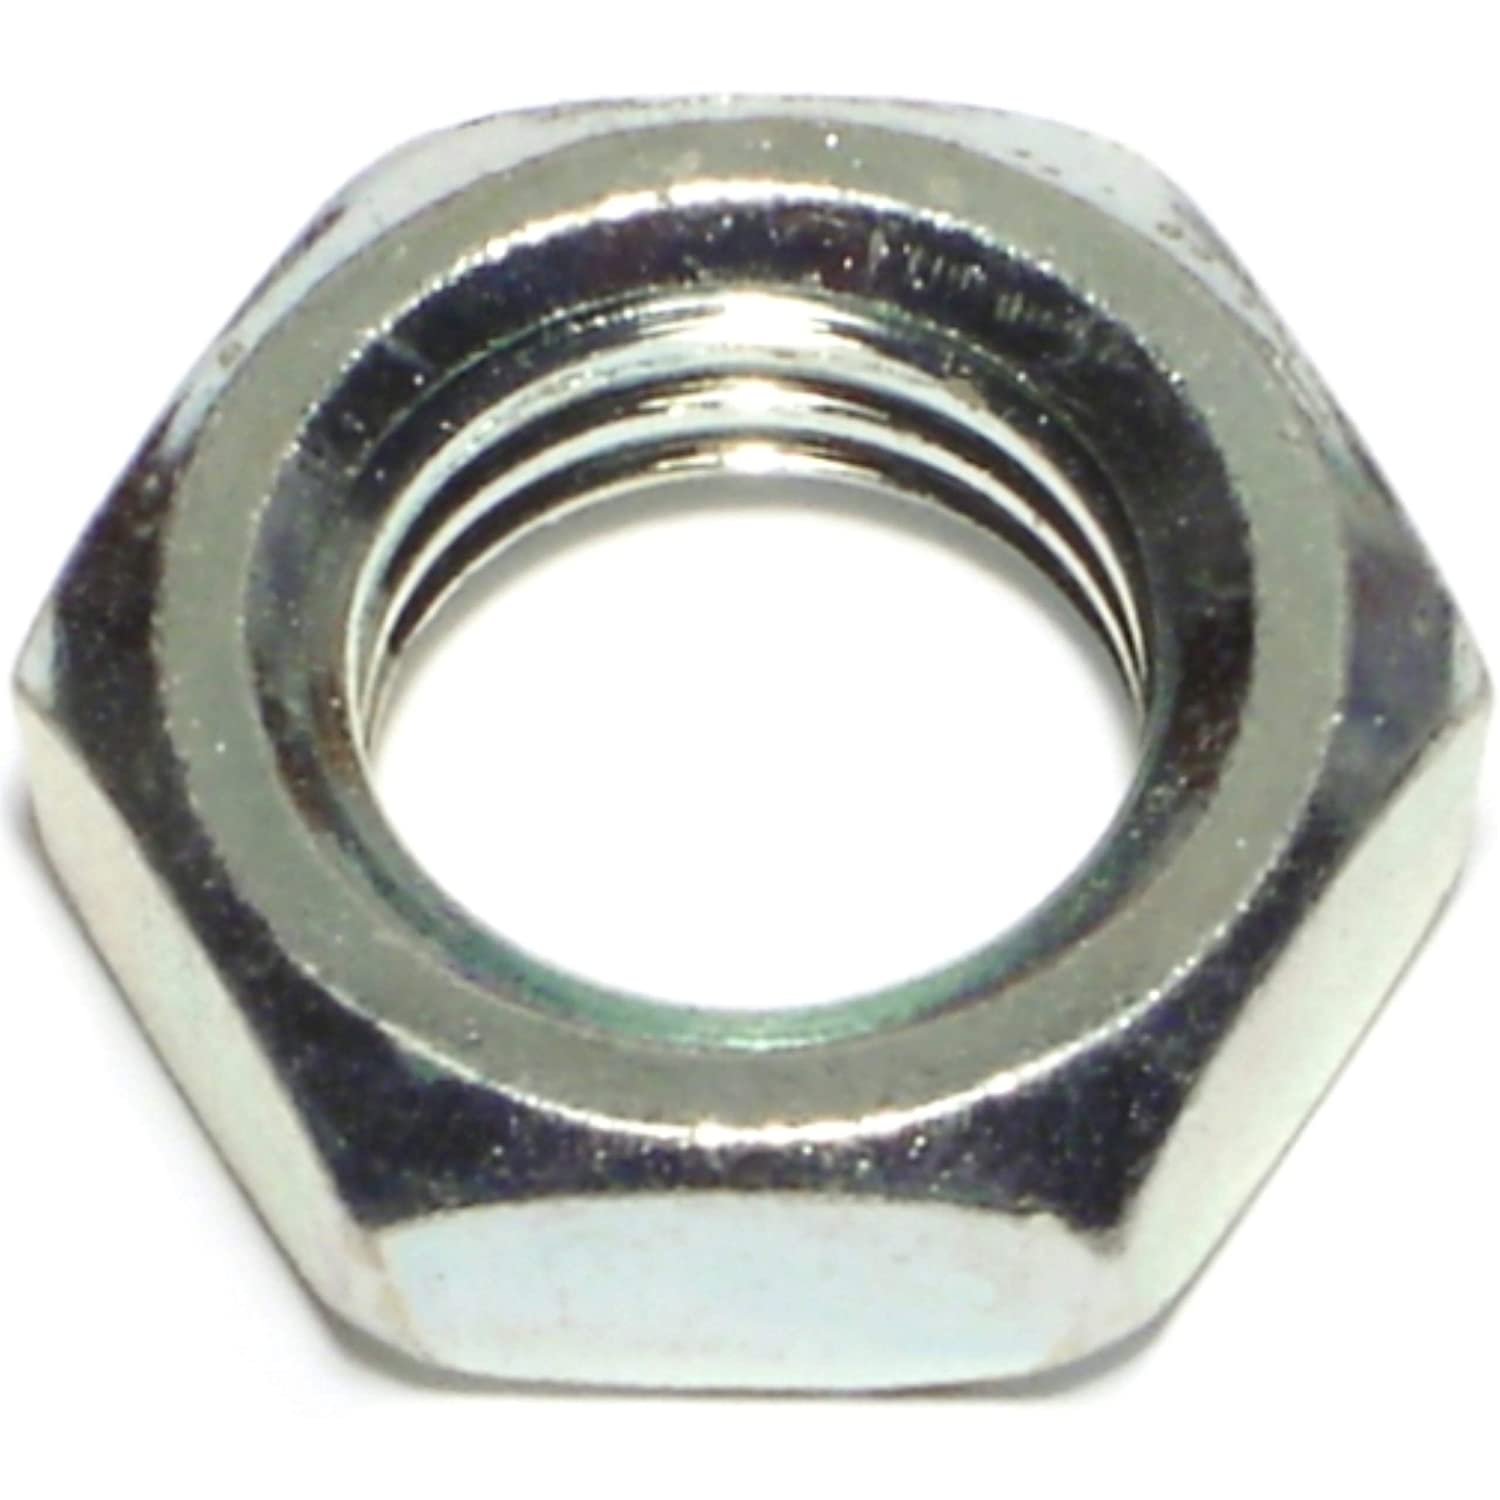 Hard-to-Find Fastener 014973259419 Coarse Hex Jam Nuts Piece-20 3//4-10